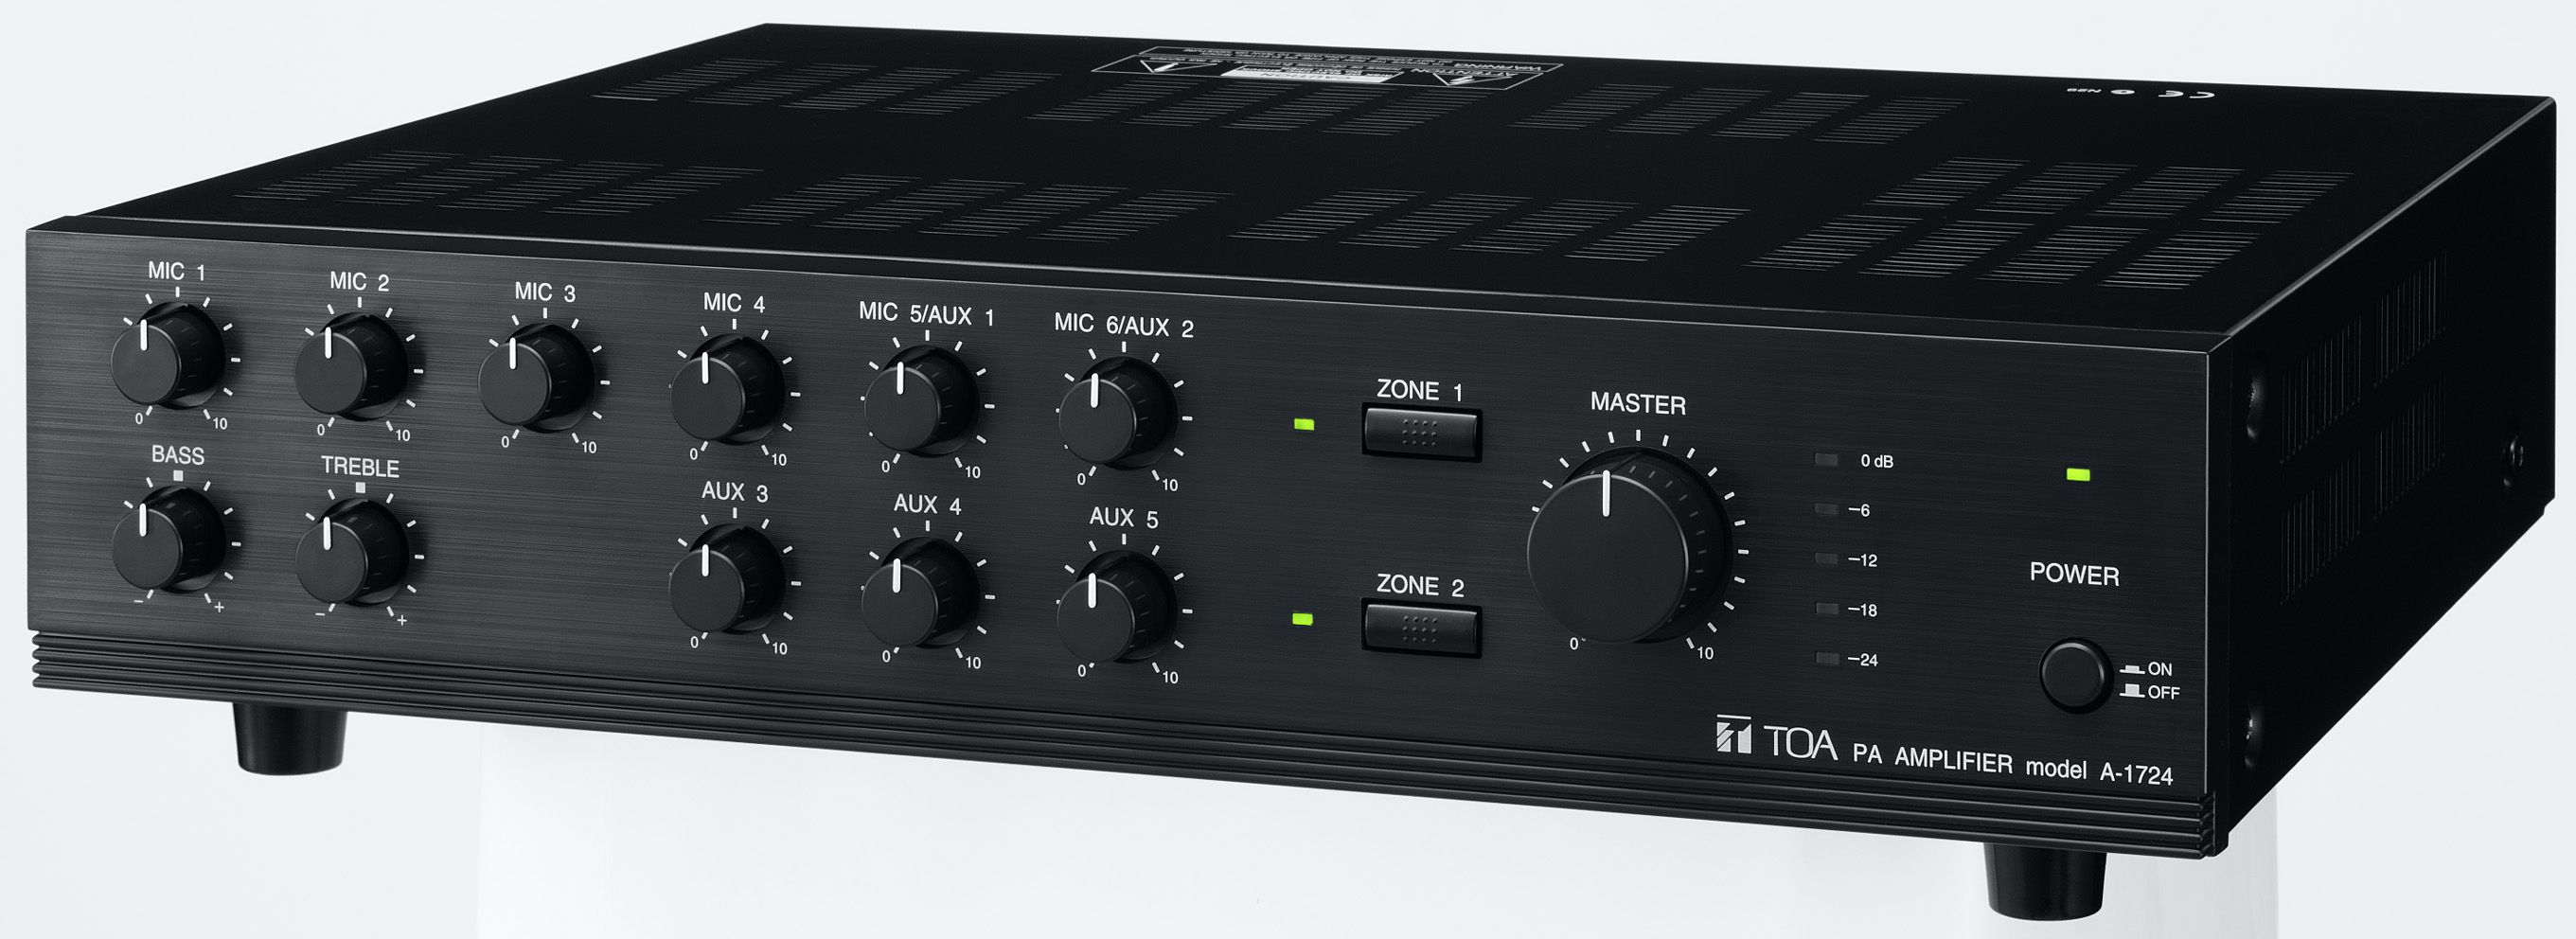 TOA A-1724 Two Zone Mixer Amplifiers 8 Inputs 100V Line or 8ohm